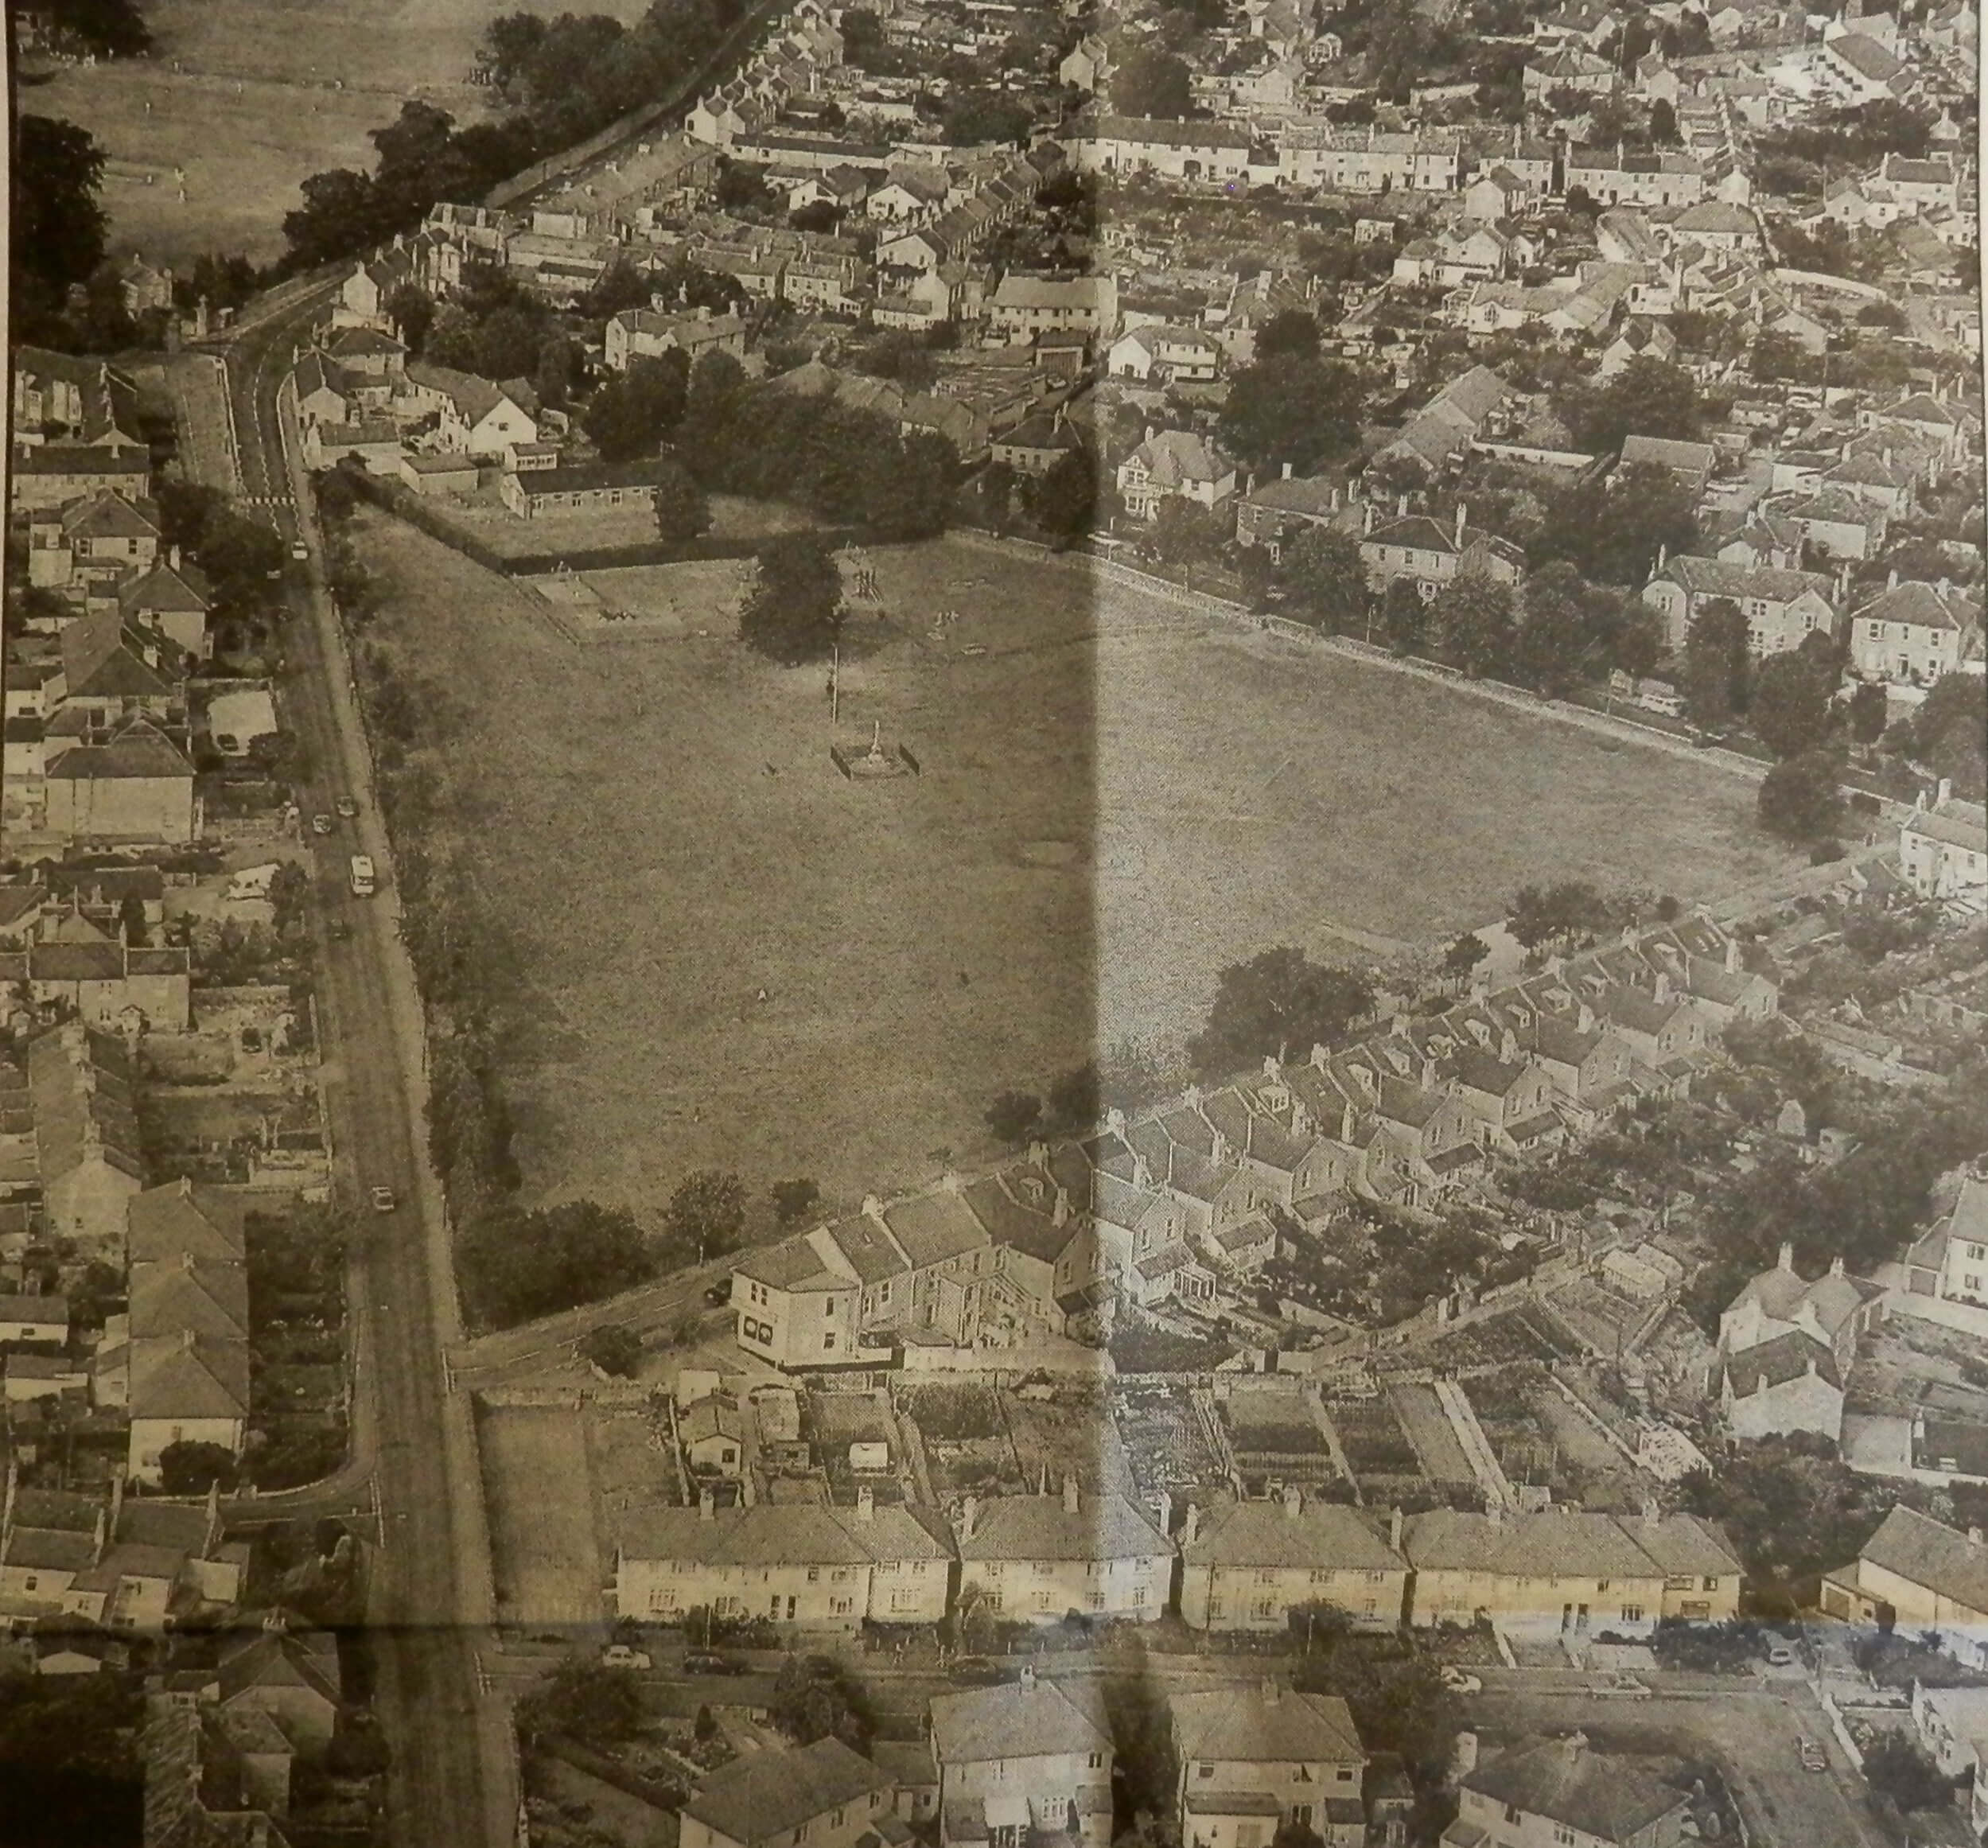 1993 aerial photo of Combe Down